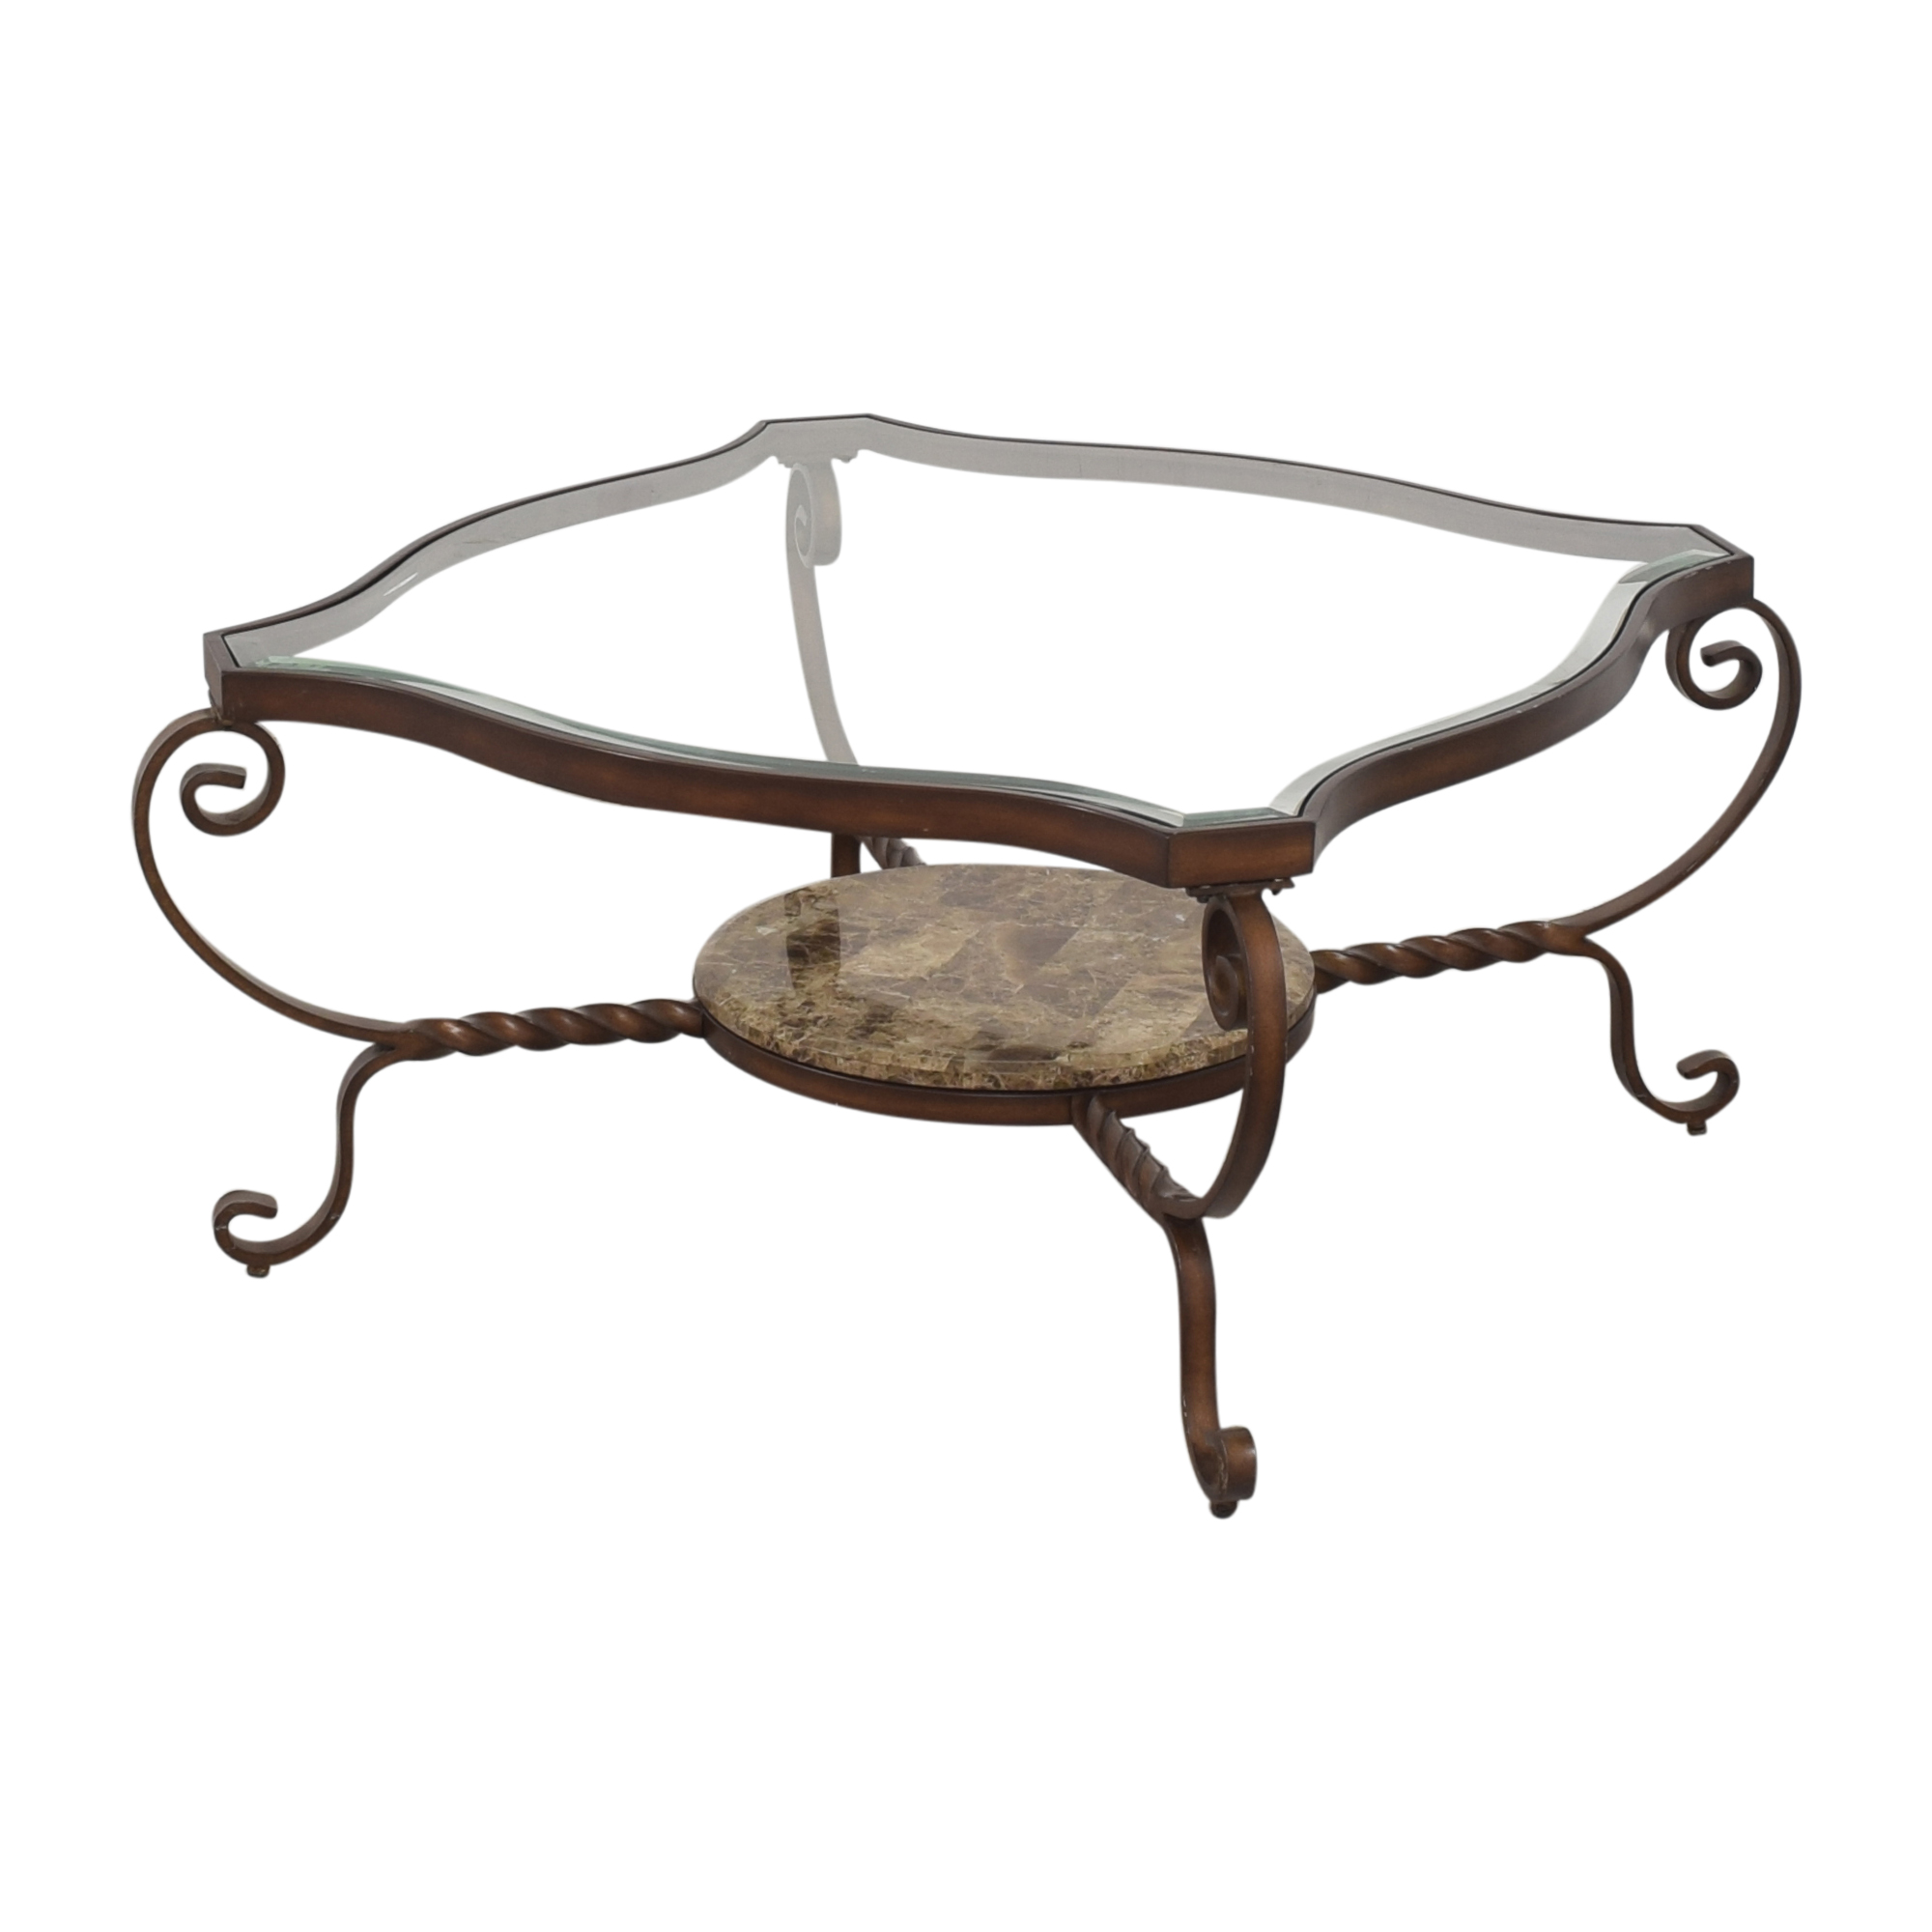 Decorative Cocktail Table for sale